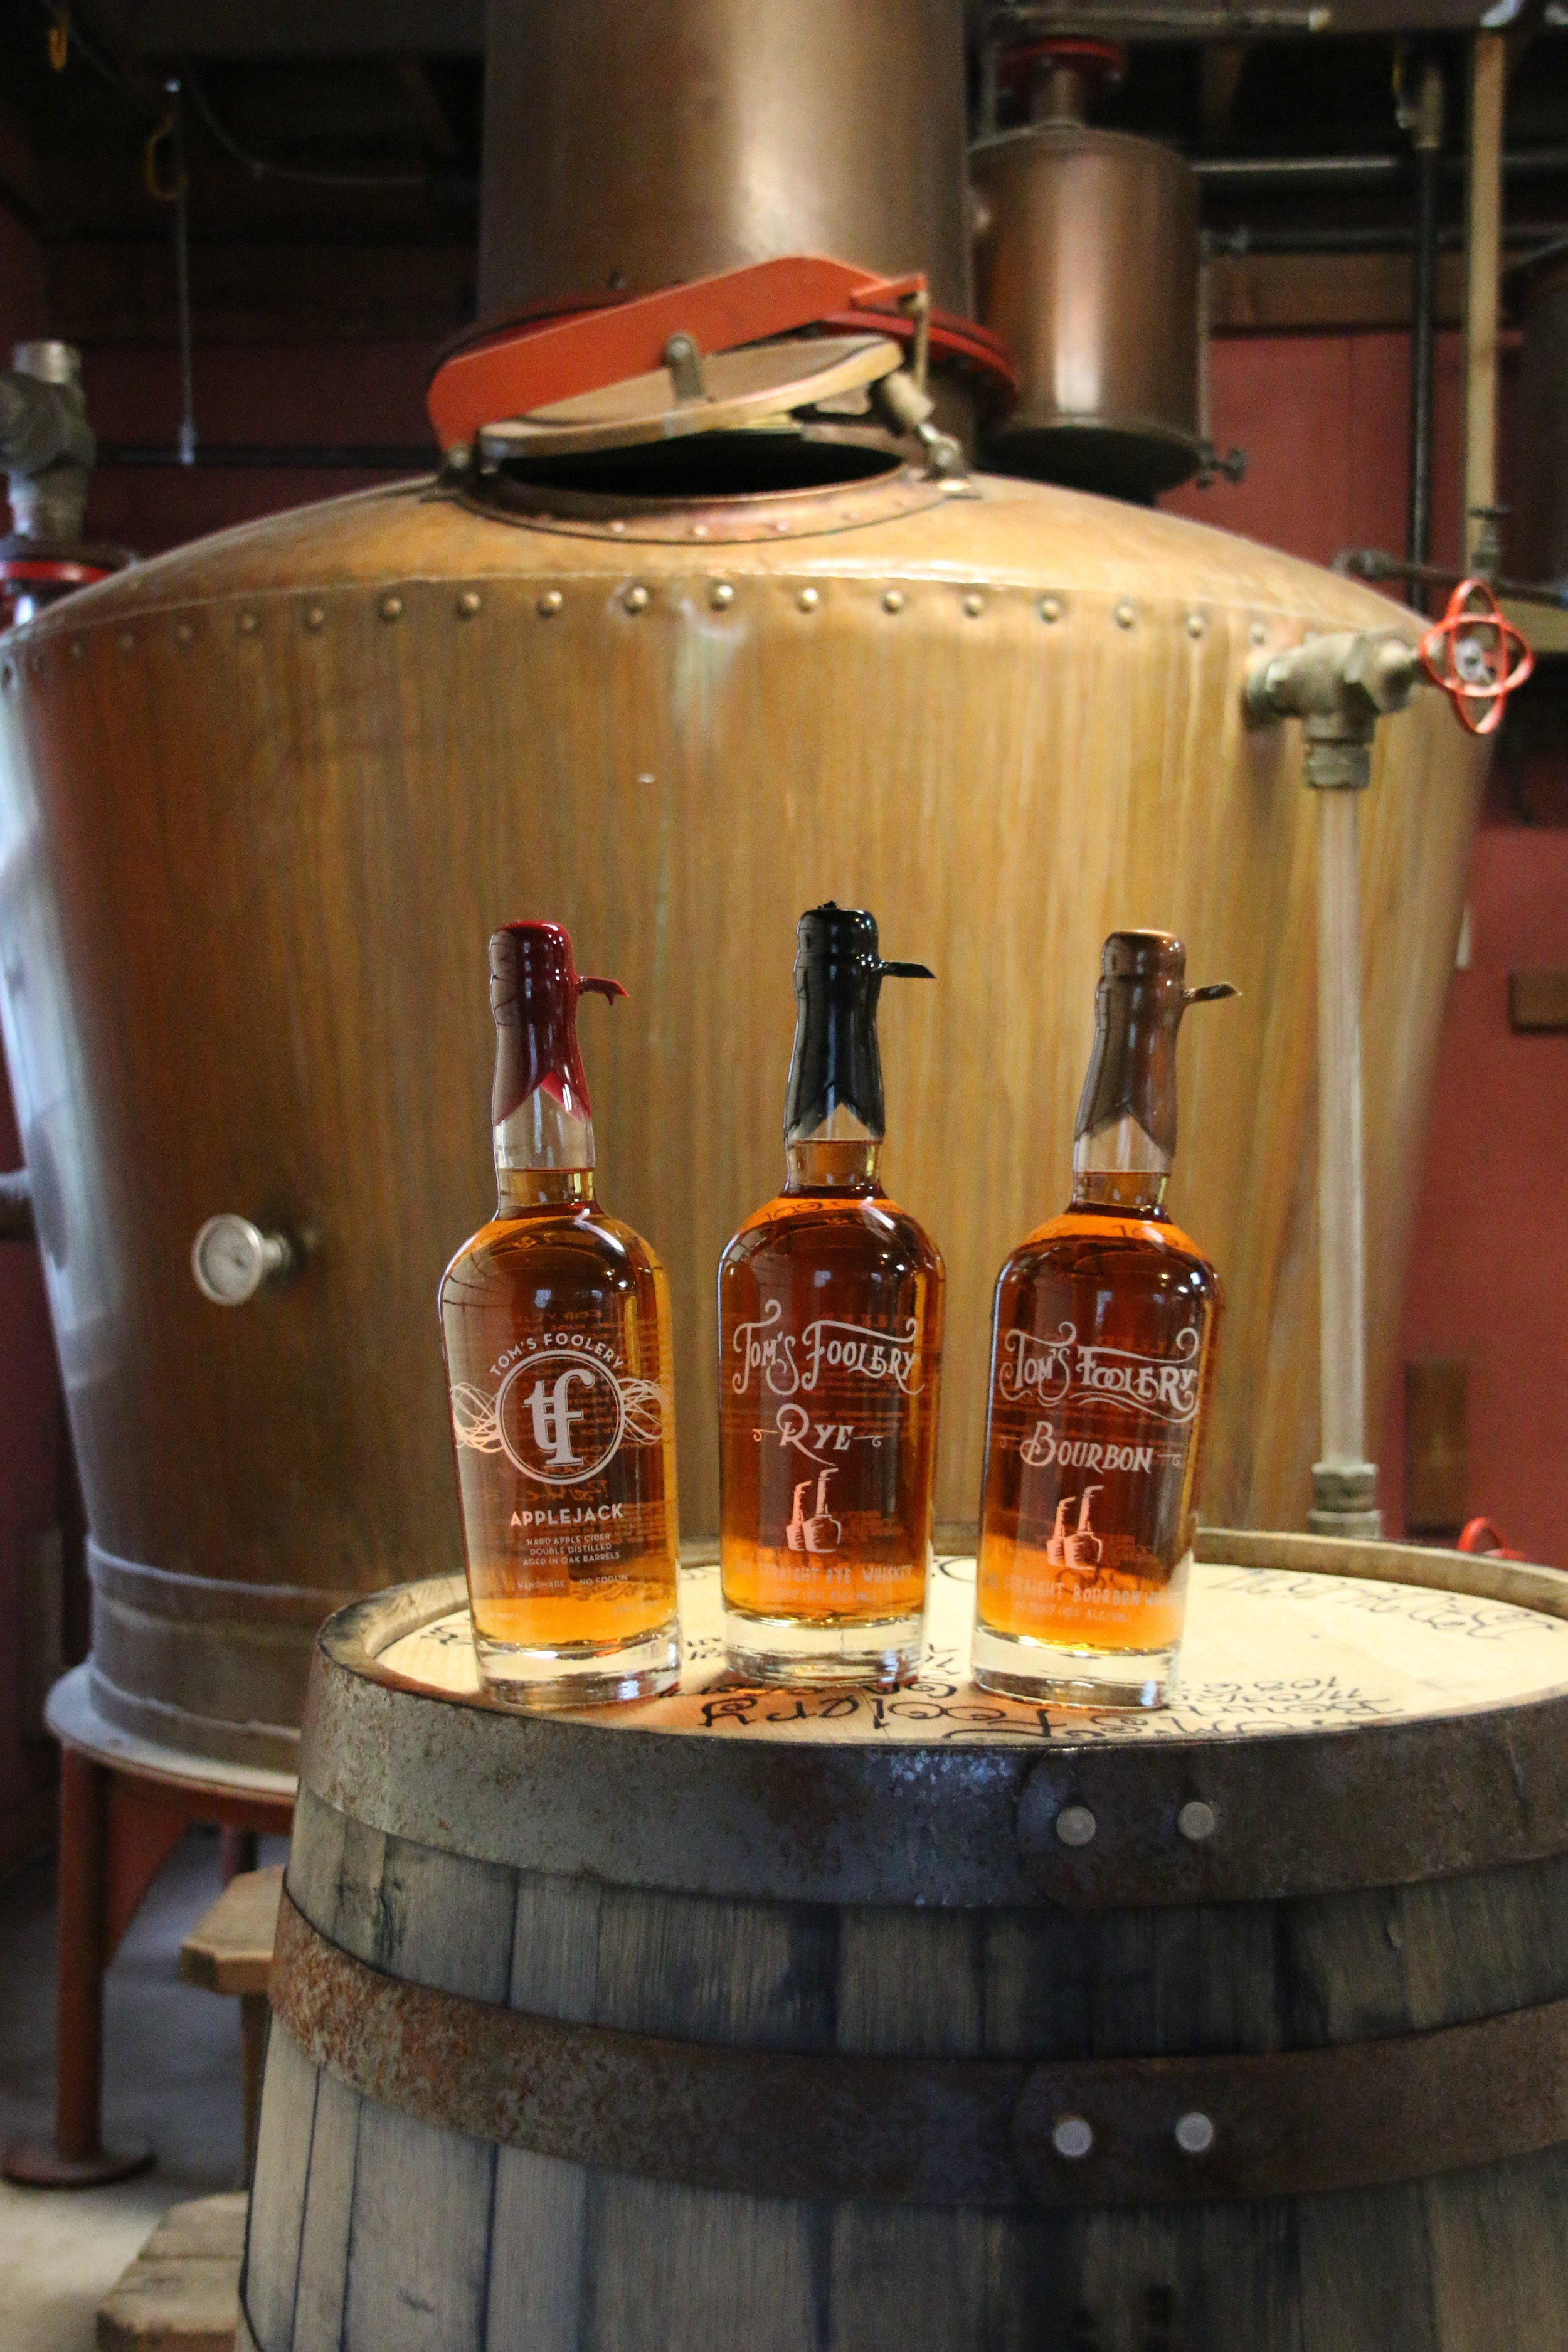 Bourbon, Rye and Applejack - Tom's Foolery began as a hobby: a barn, a still, and a family with passion for quality and tradition. Today, we are a traditional American distillery,where we make great products from scratch and share the experience with friends.Our focus is on Applejack, Bourbon, and Rye Whiskey, pot-distilled in the heart of America's Snowbelt.